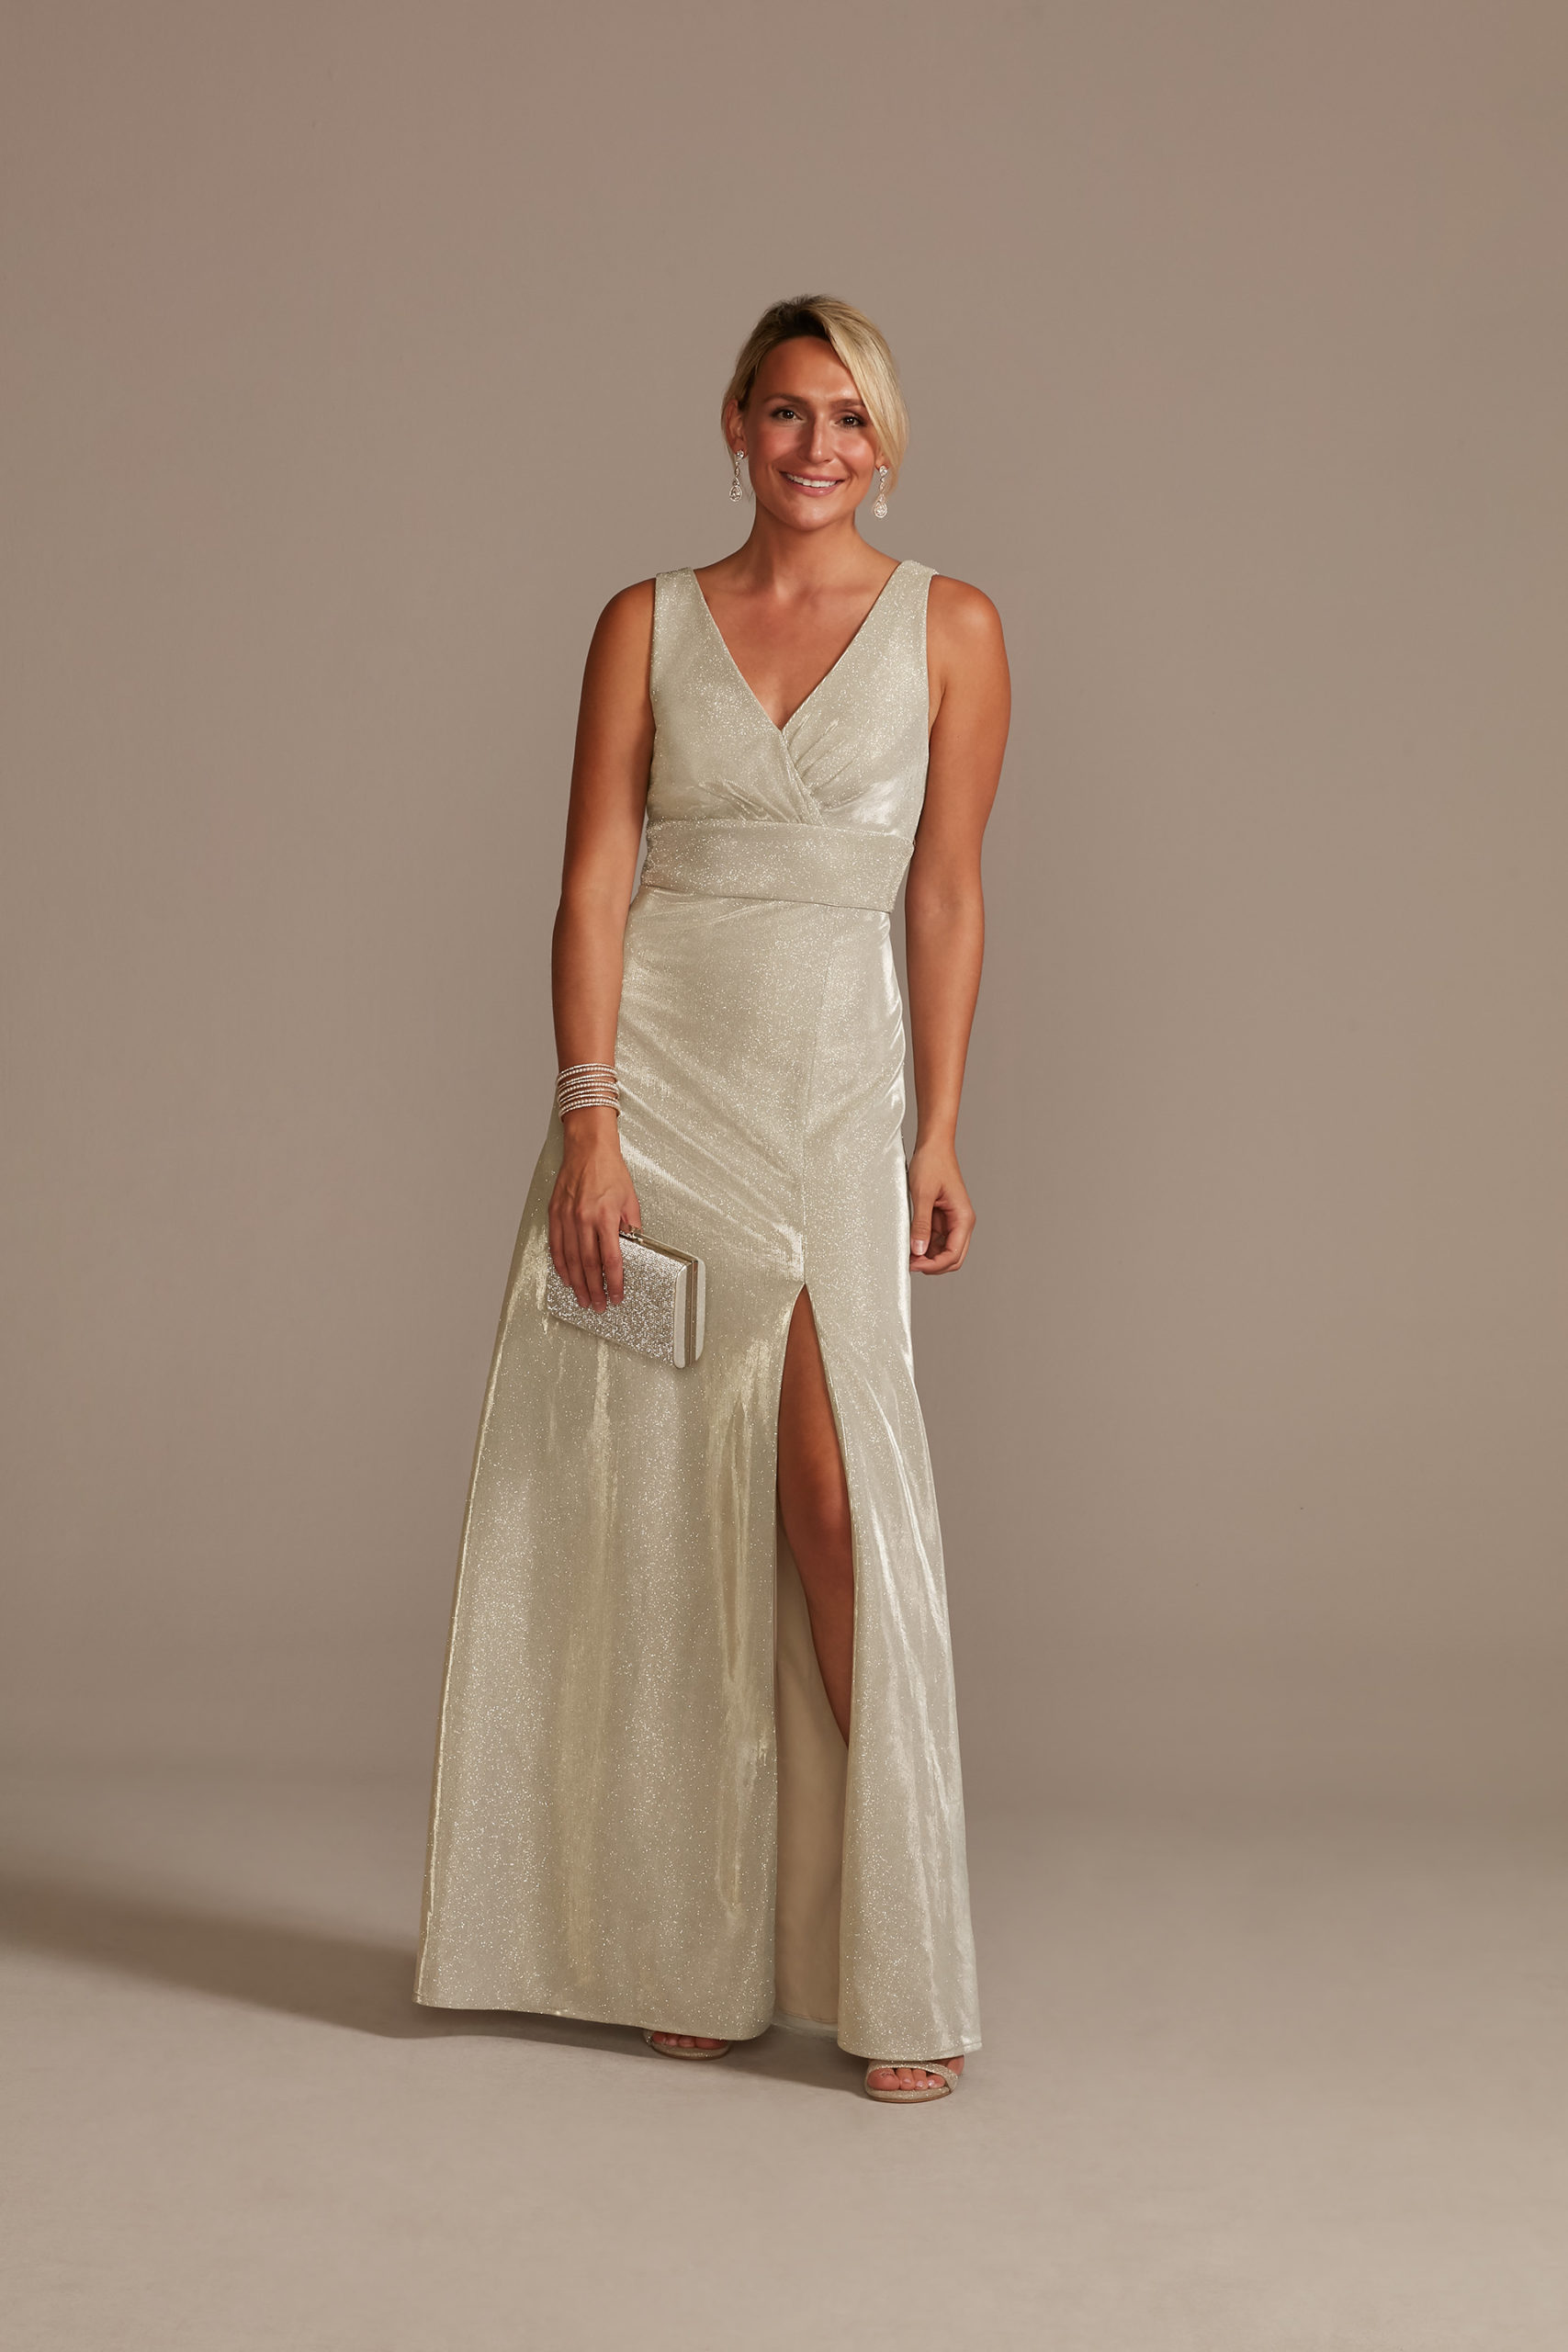 model wearing champagne metallic a-line mother of the bride dress